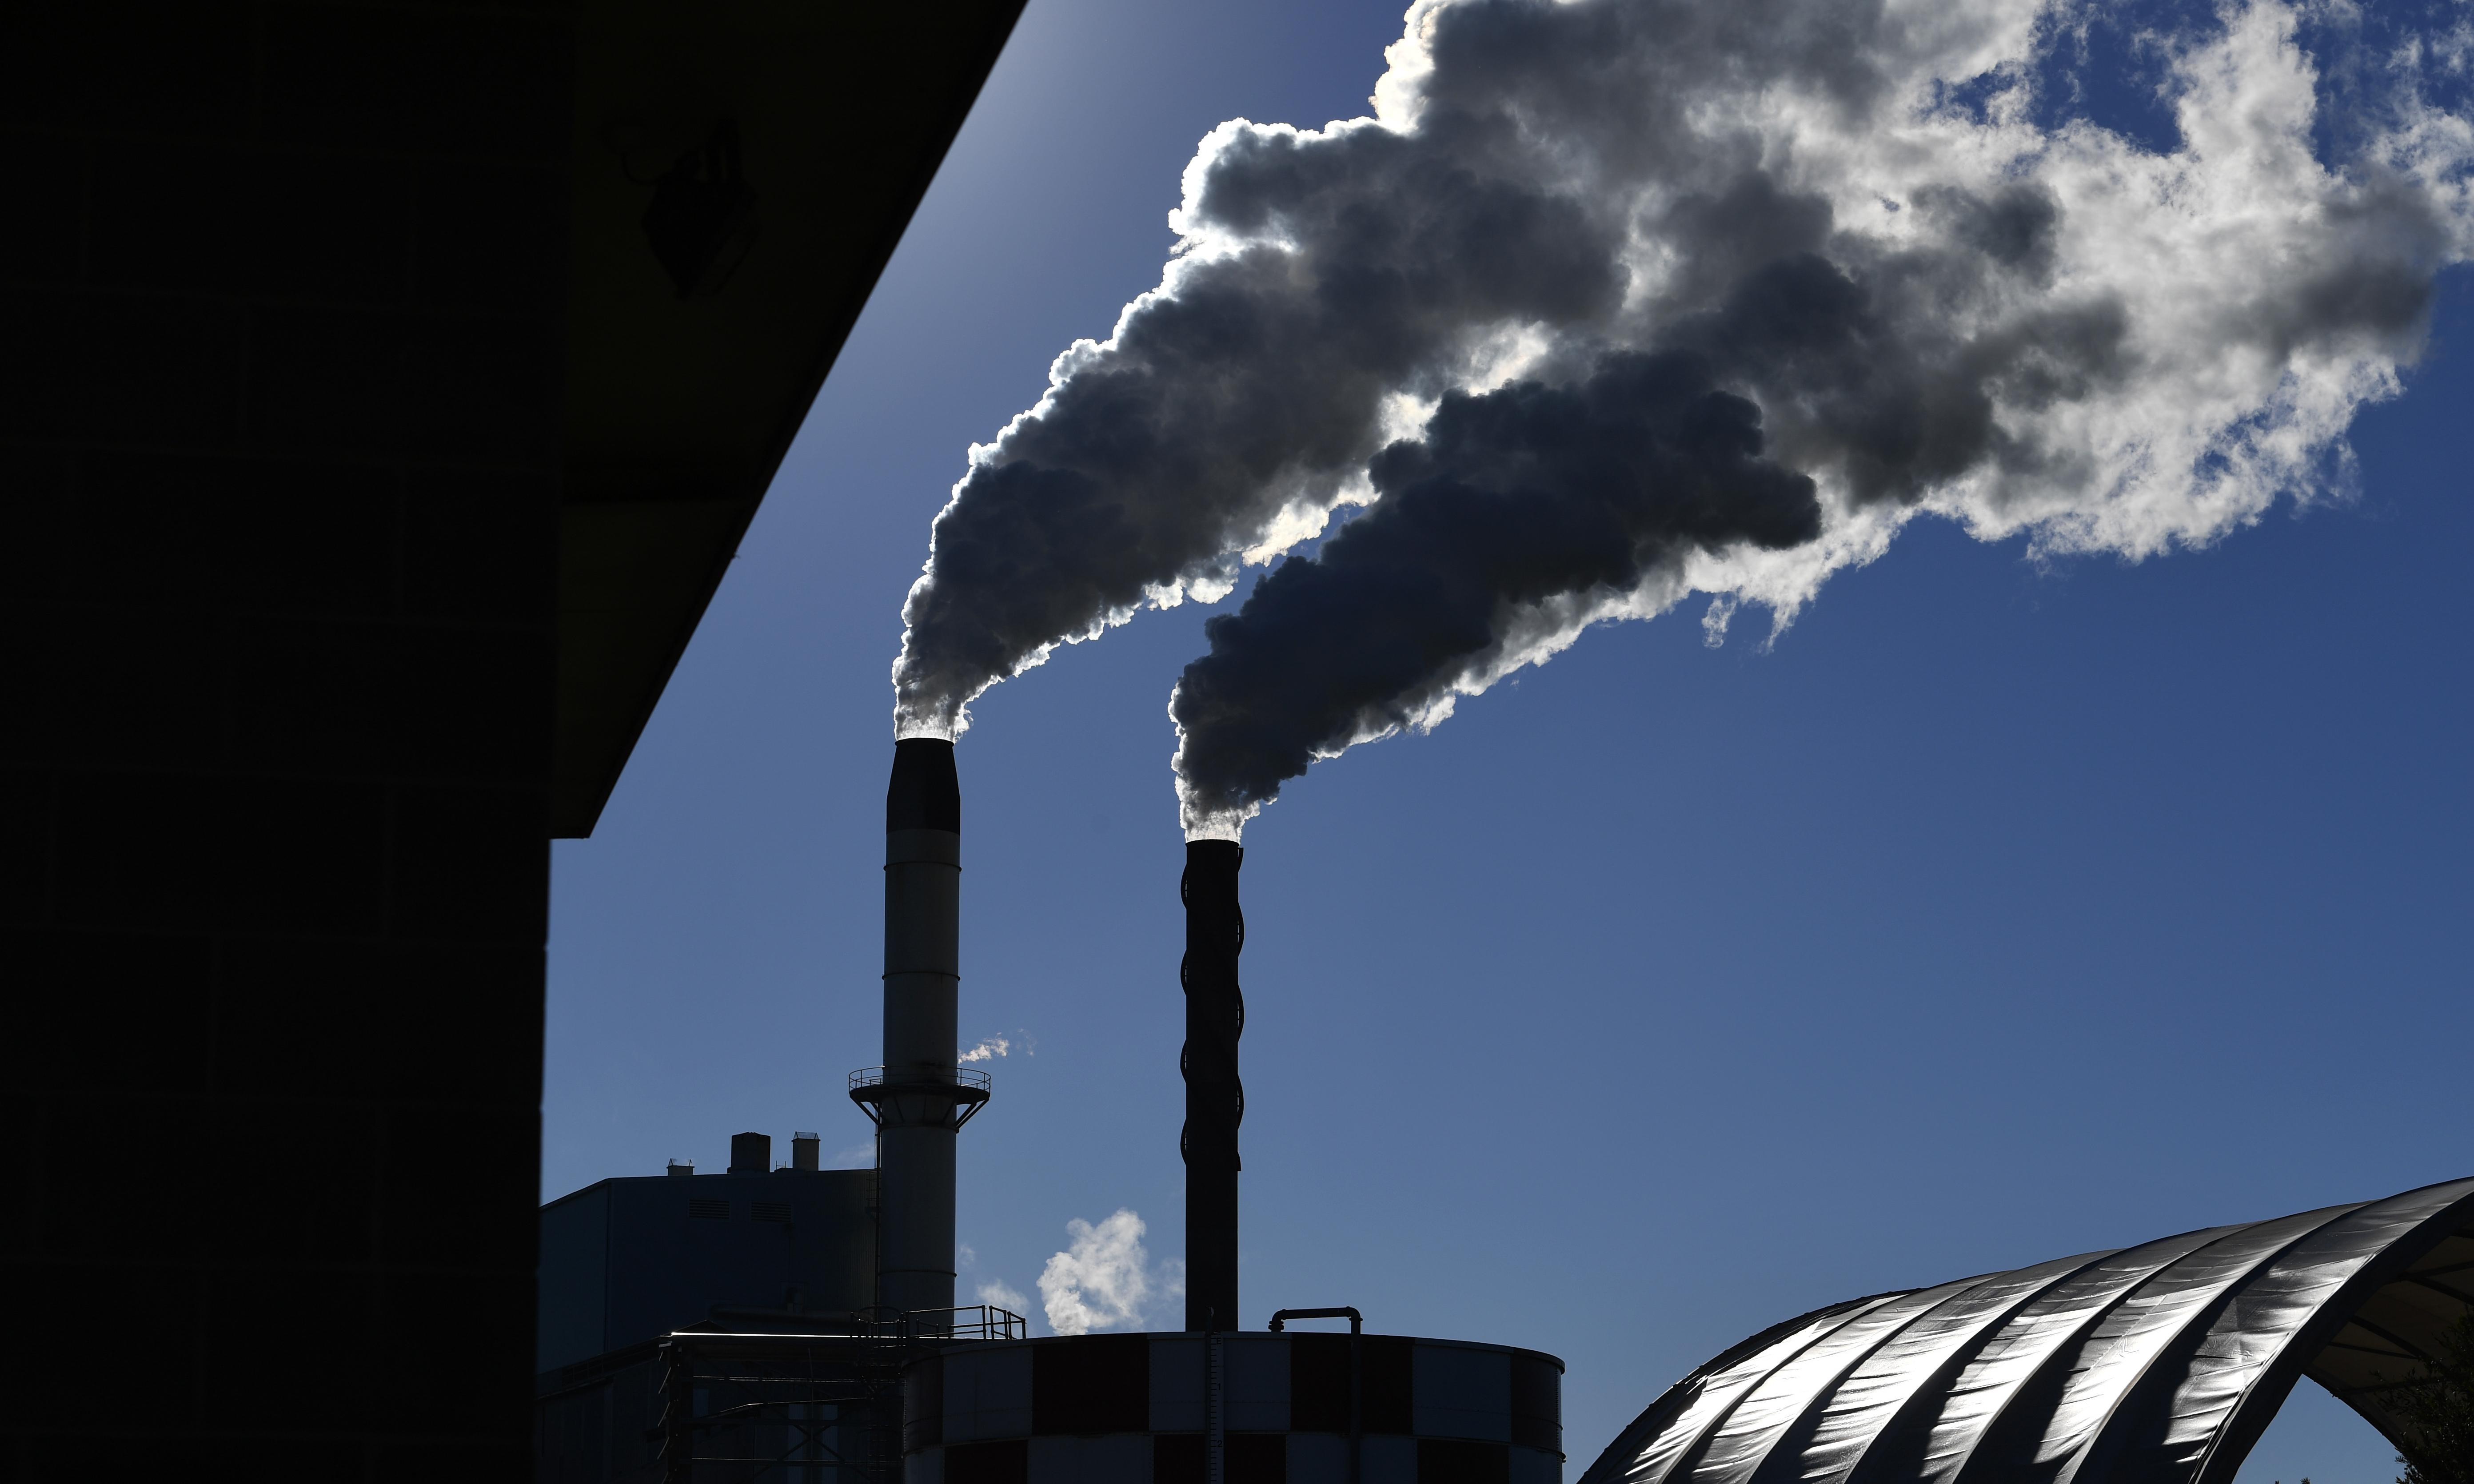 Coalition's climate policy has allowed heavy industry to increase emissions by nearly a third